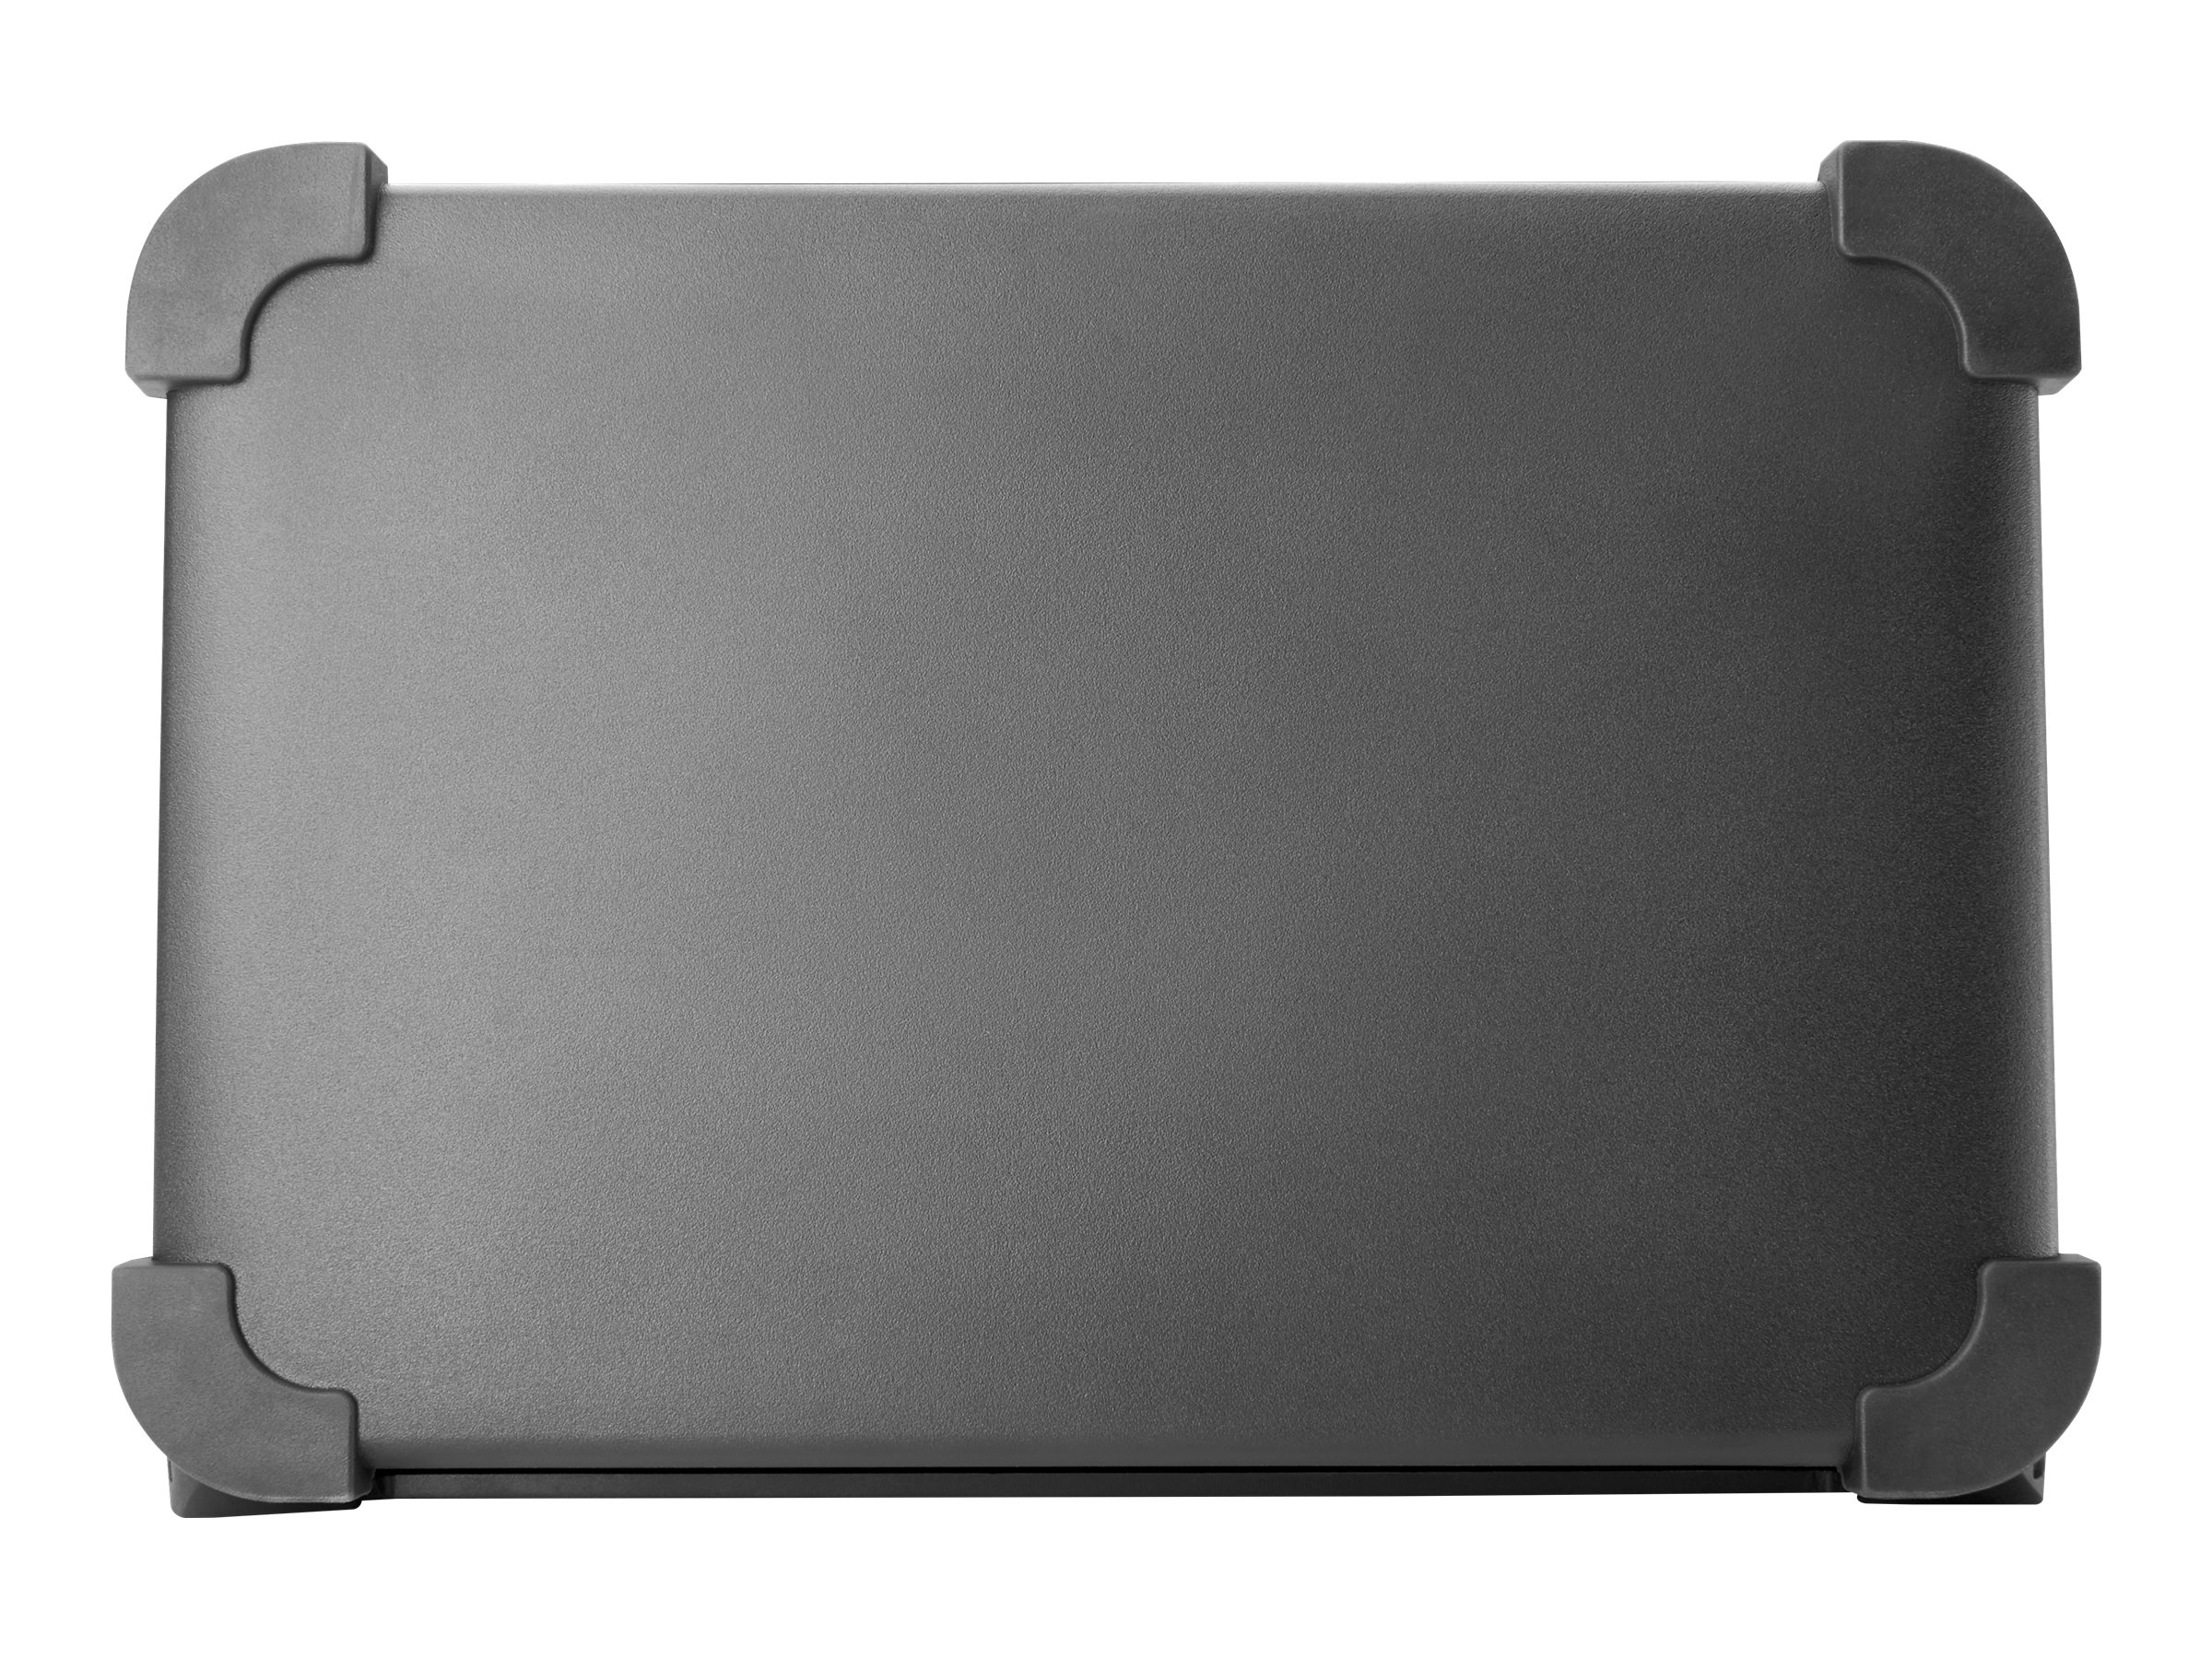 HP Protective Cover for Chromebook 11 G3, M5N98UT